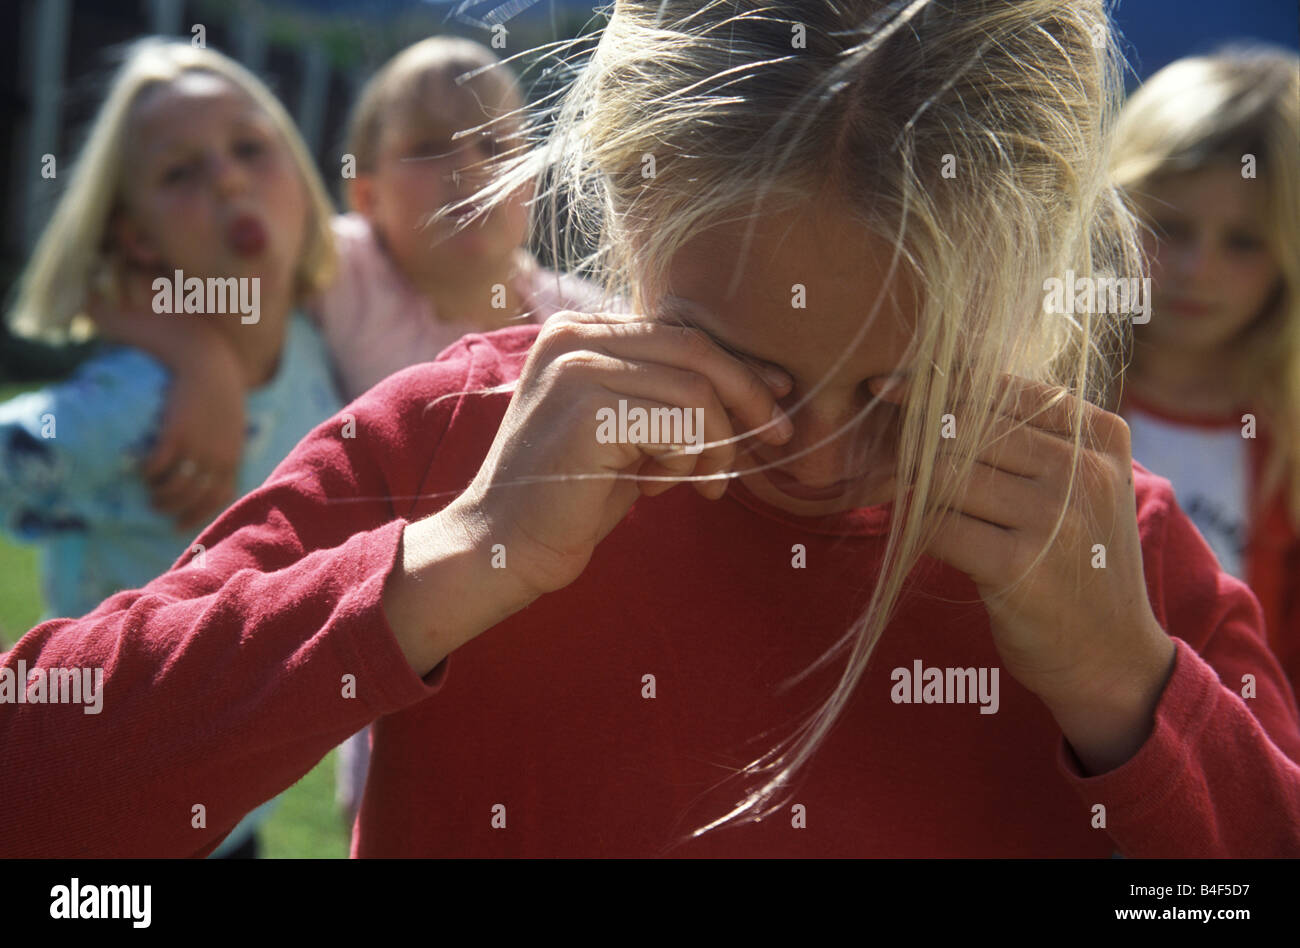 little girl being teased and bullied by other girls Stock Photo